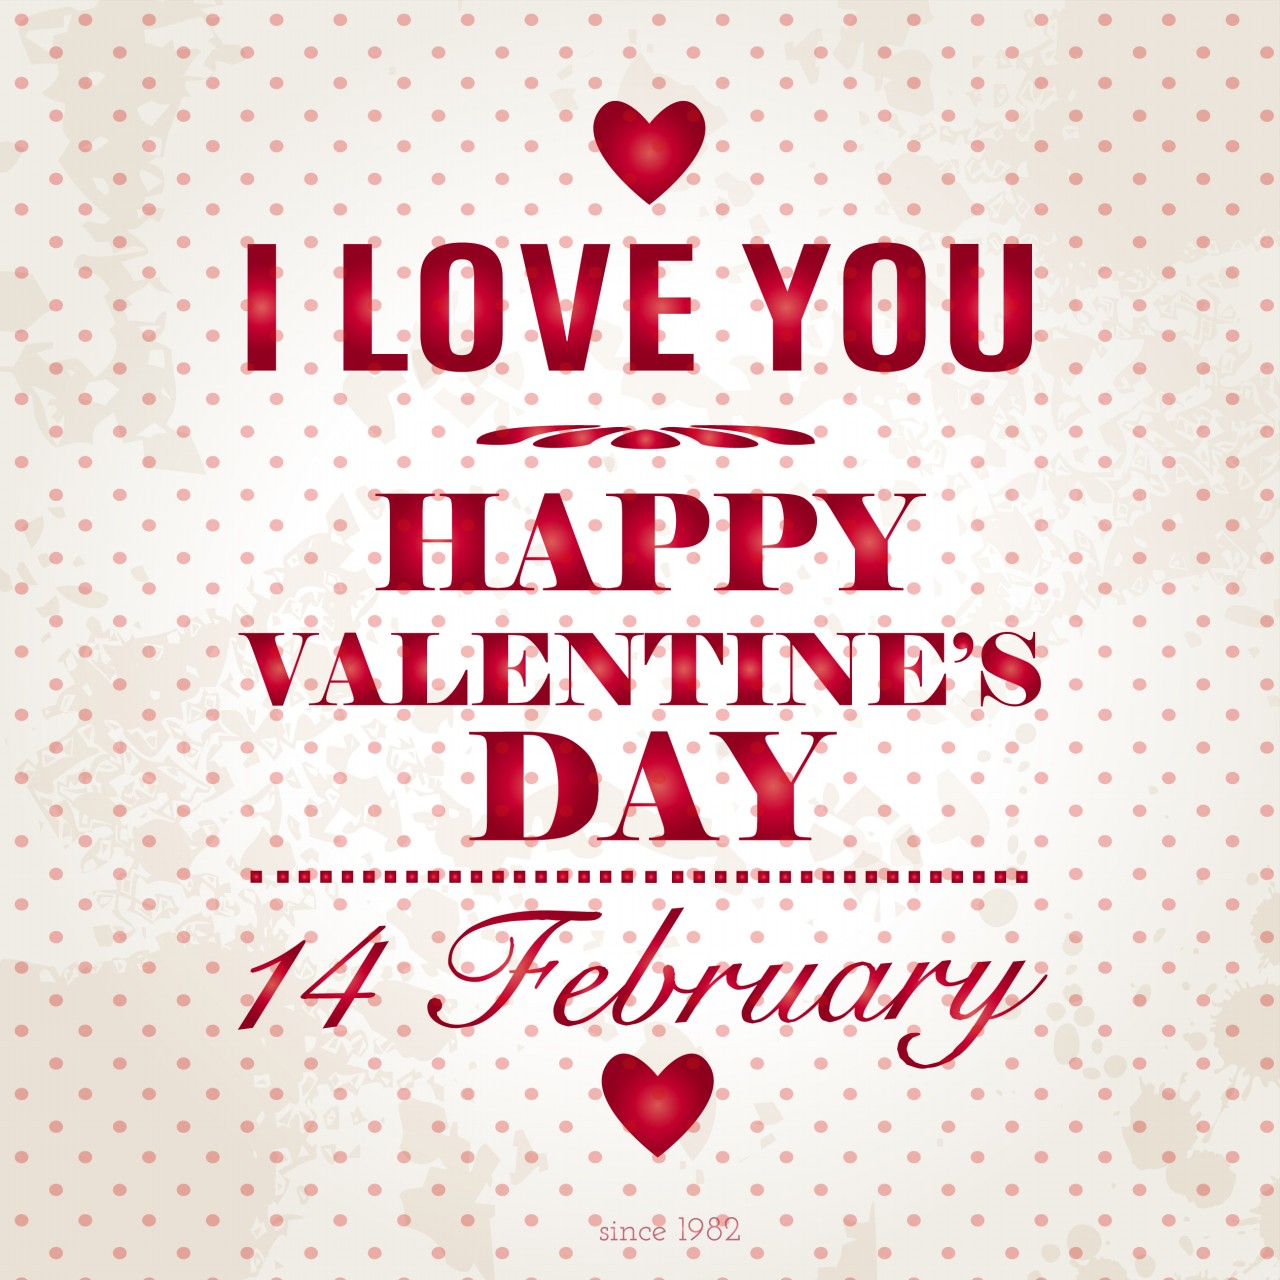 forget happy valentines day - HD1024×1024